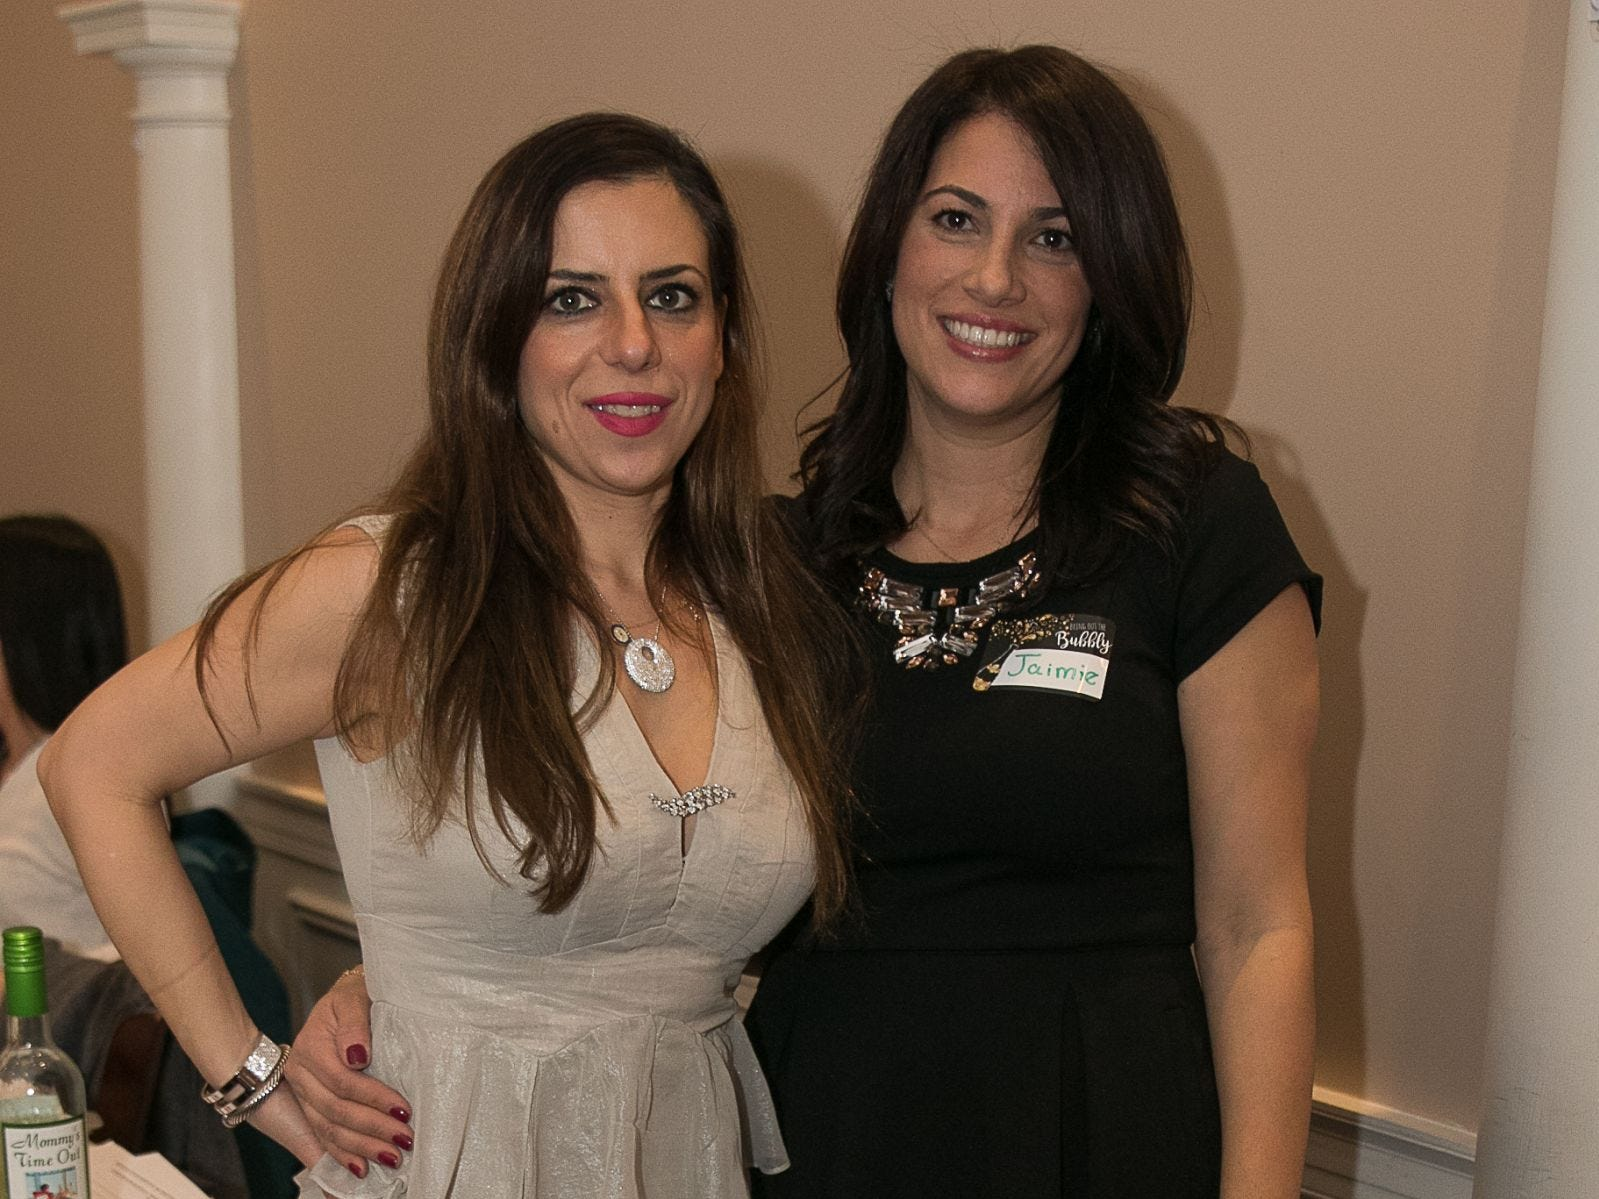 Sam Vahid, Jaimie Sirianni. The Saddle River Valley Junior Woman's Club held an inductee dinnerfor incoming members at Bellisimo Restaurante in Montvale. 01/23/2019